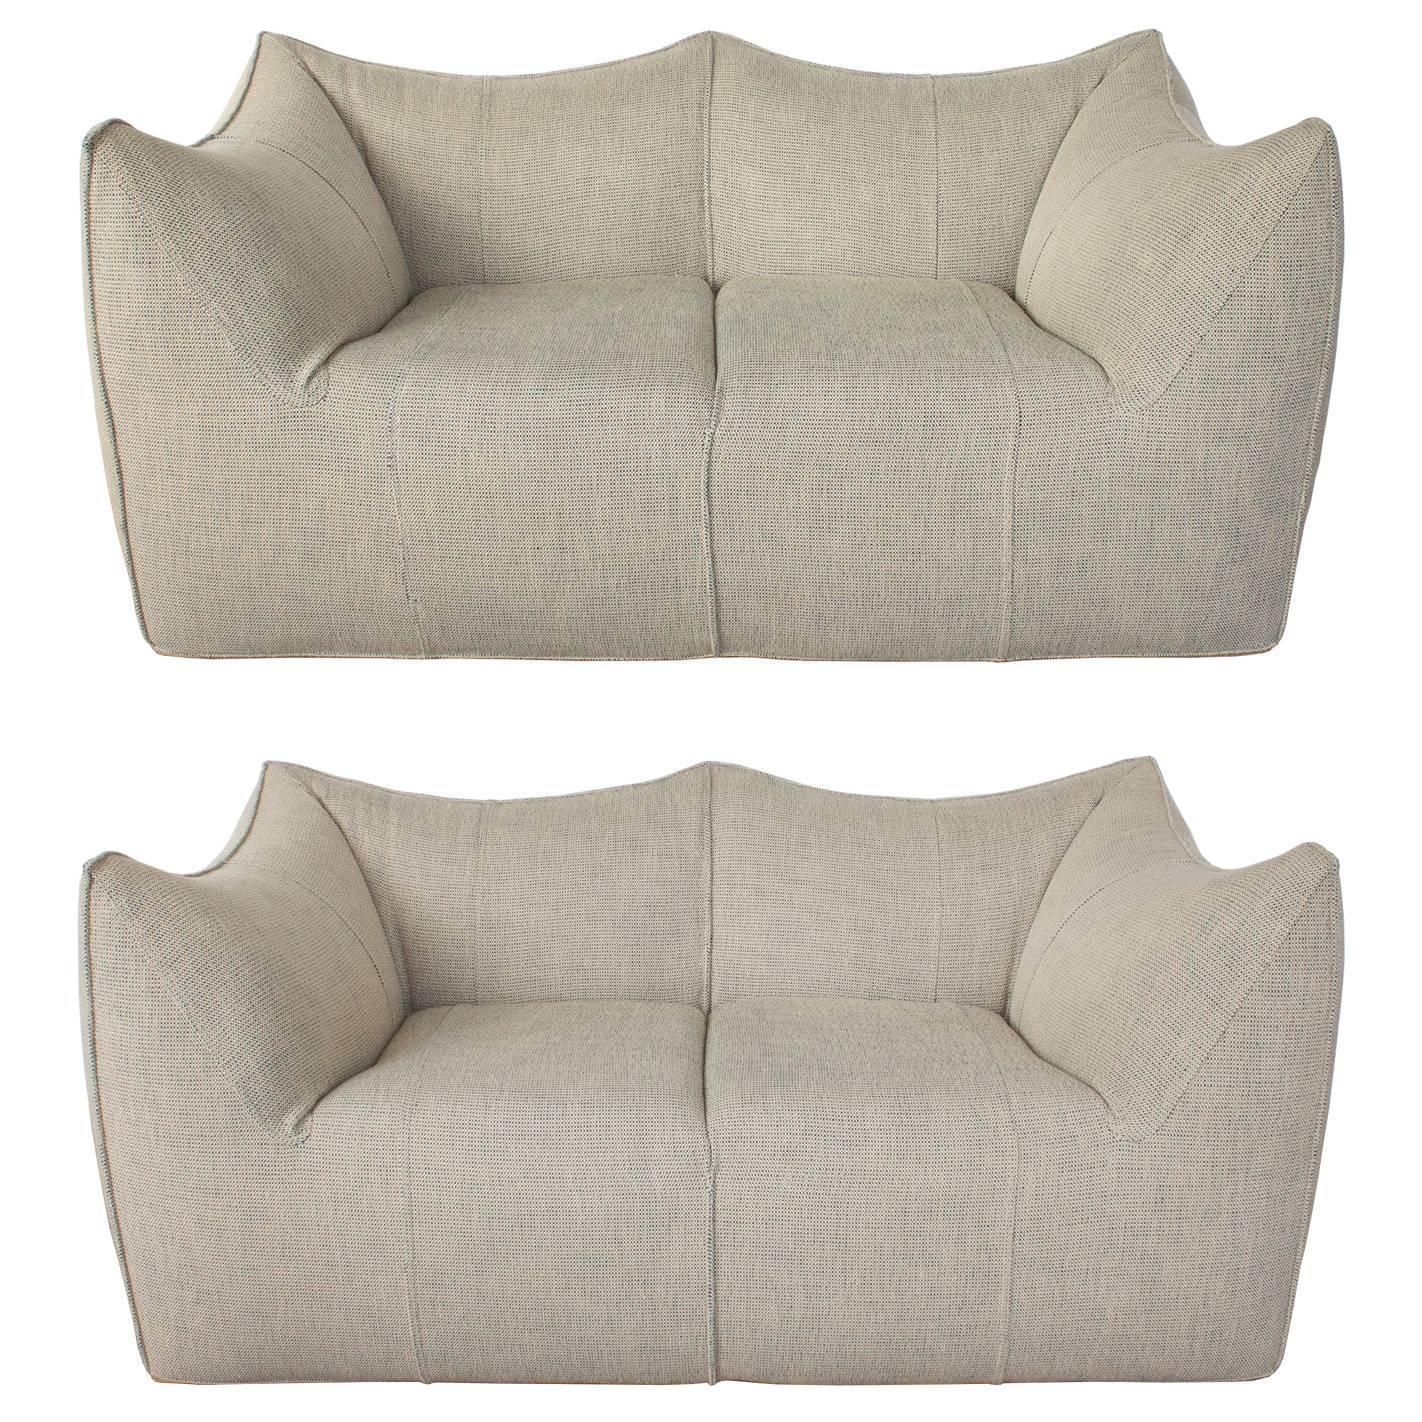 B Famous Schlafsofas Mario Bellini Le Bambole Loveseat Or Settees For B&b Italia